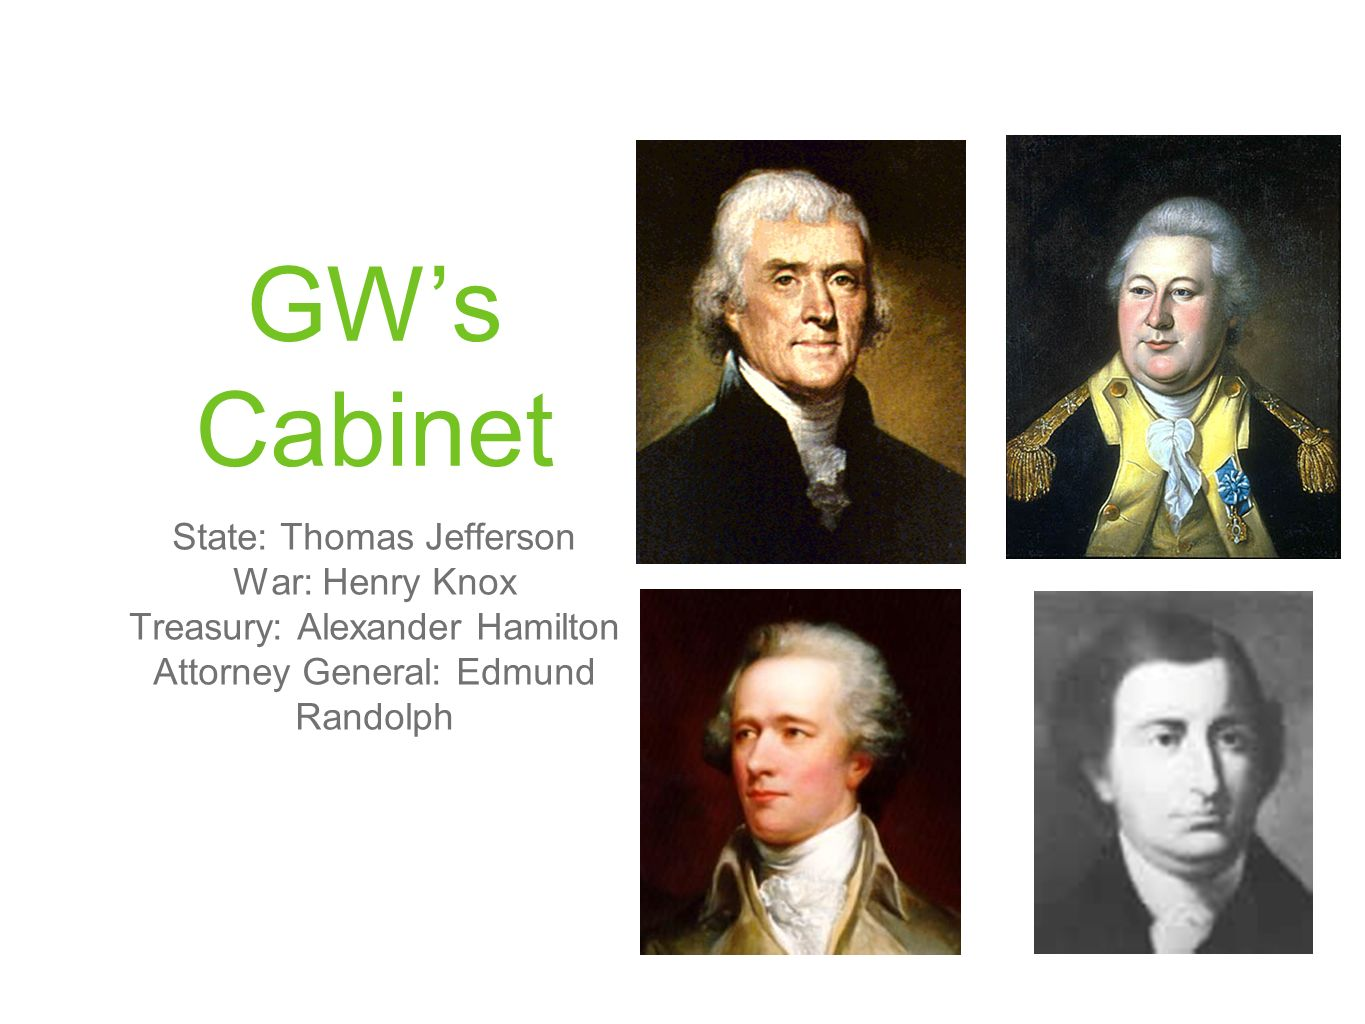 GWs Cabinet State: Thomas Jefferson War: Henry Knox Treasury: Alexander Hamilton Attorney General: Edmund Randolph